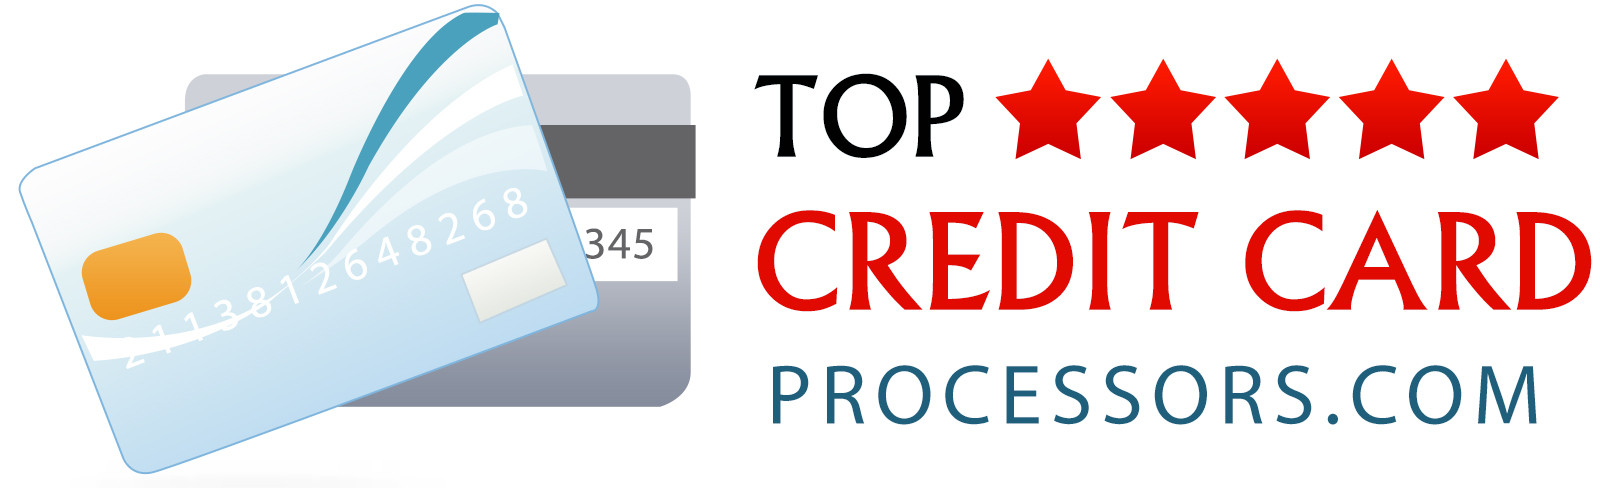 Top Fifty Best Credit Card Processing Companies Named by topcreditcardprocessors.com for August 2021